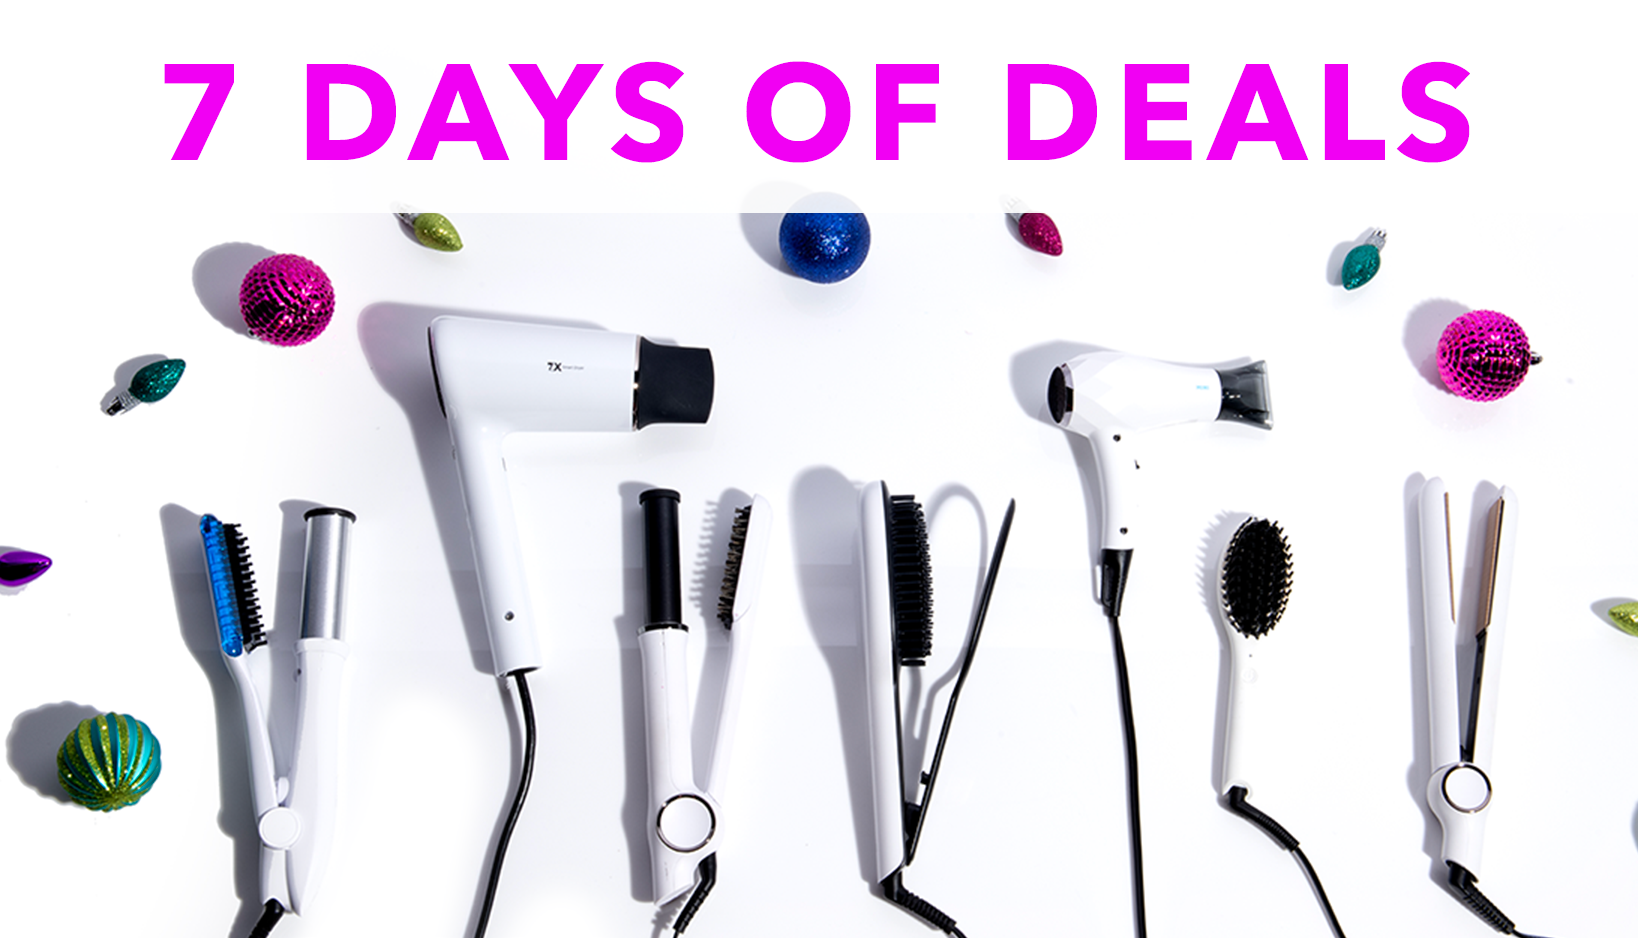 7 Days of Deals - Starting November 21 - 28. Biggest Discounts Ever!